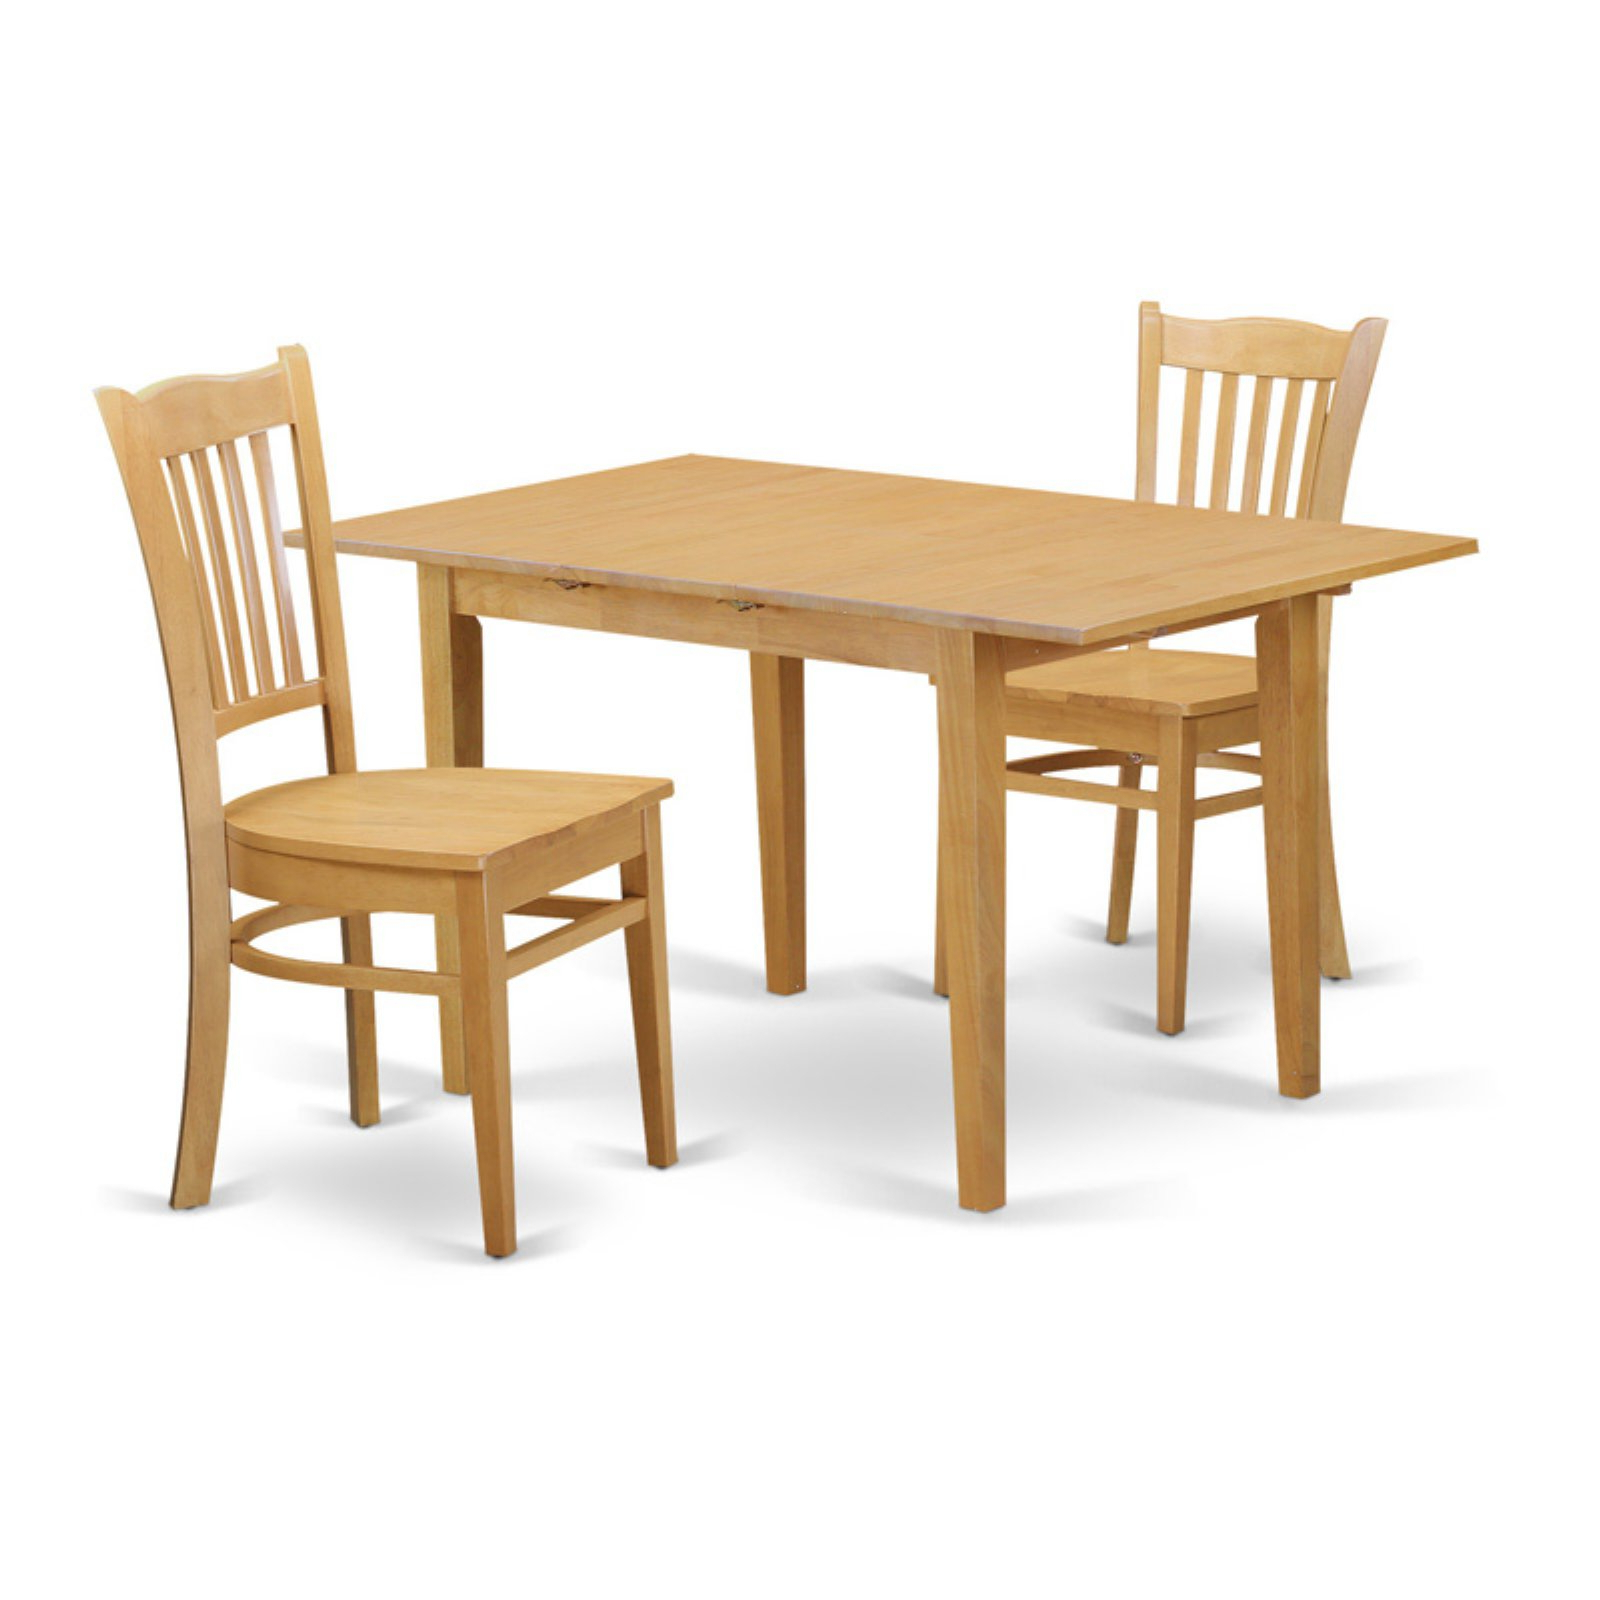 Most Popular Smyrna 3 Piece Dining Sets Intended For East West Furniture Norfolk 3 Piece Comb Back Dining Table Set In (View 6 of 20)